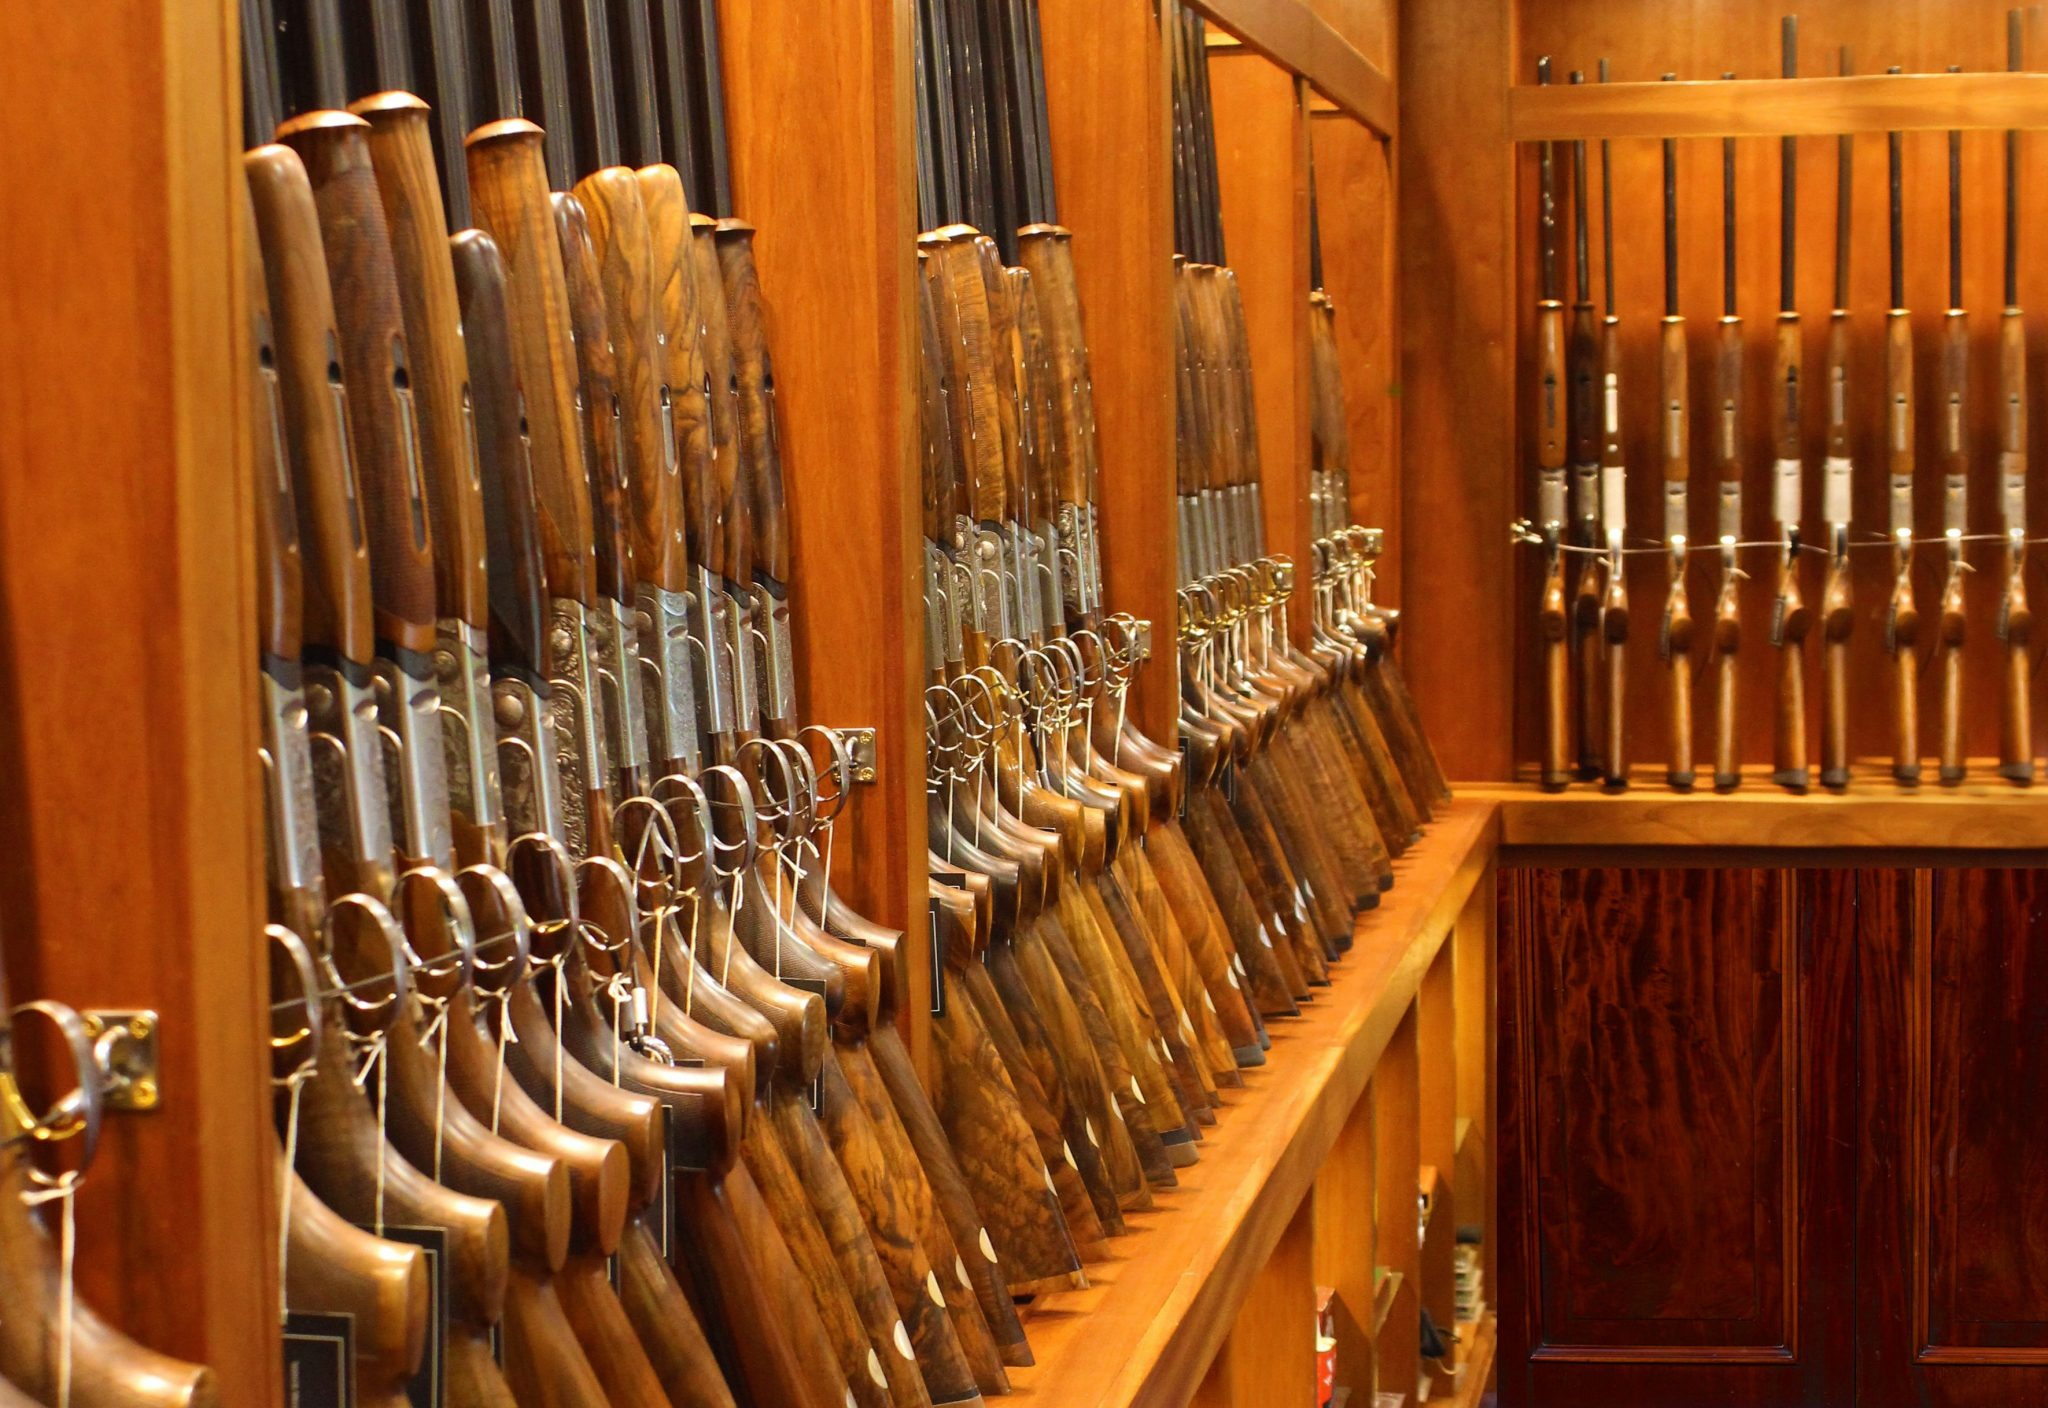 Sportarm at Lady's Wood boast a range of gun storage options